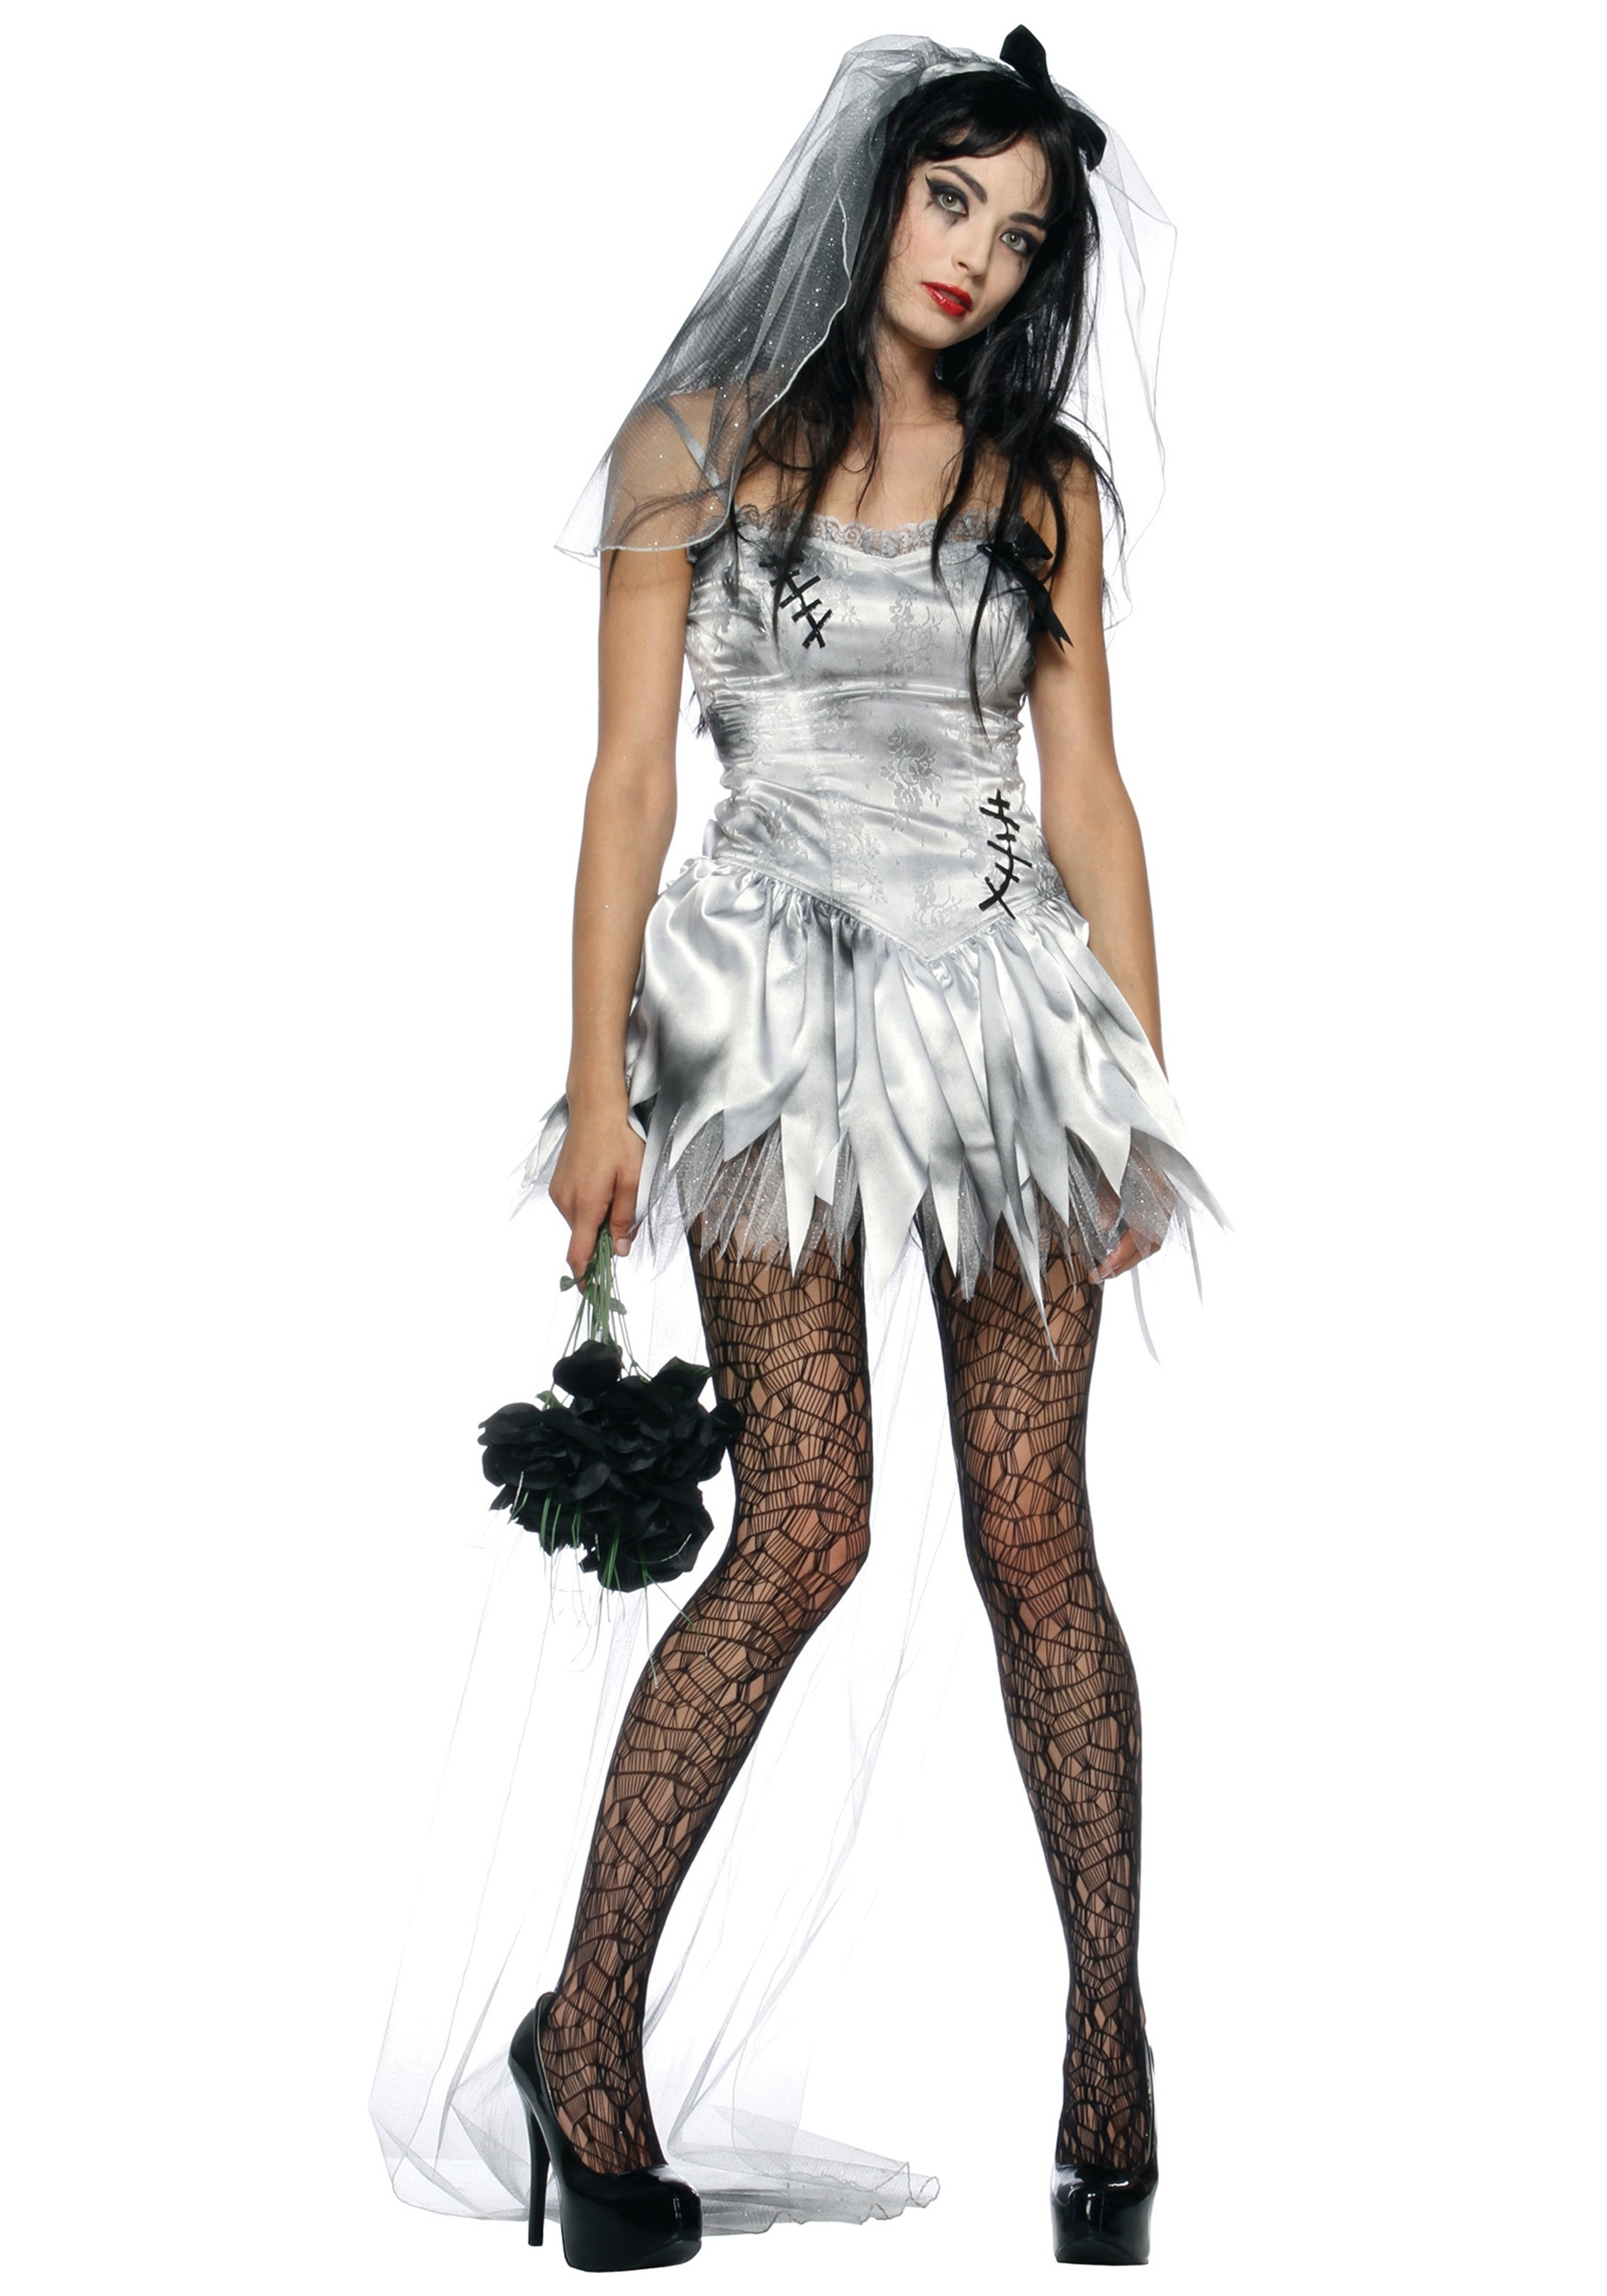 dress will make you a beautiful blushing zombie bride the costume